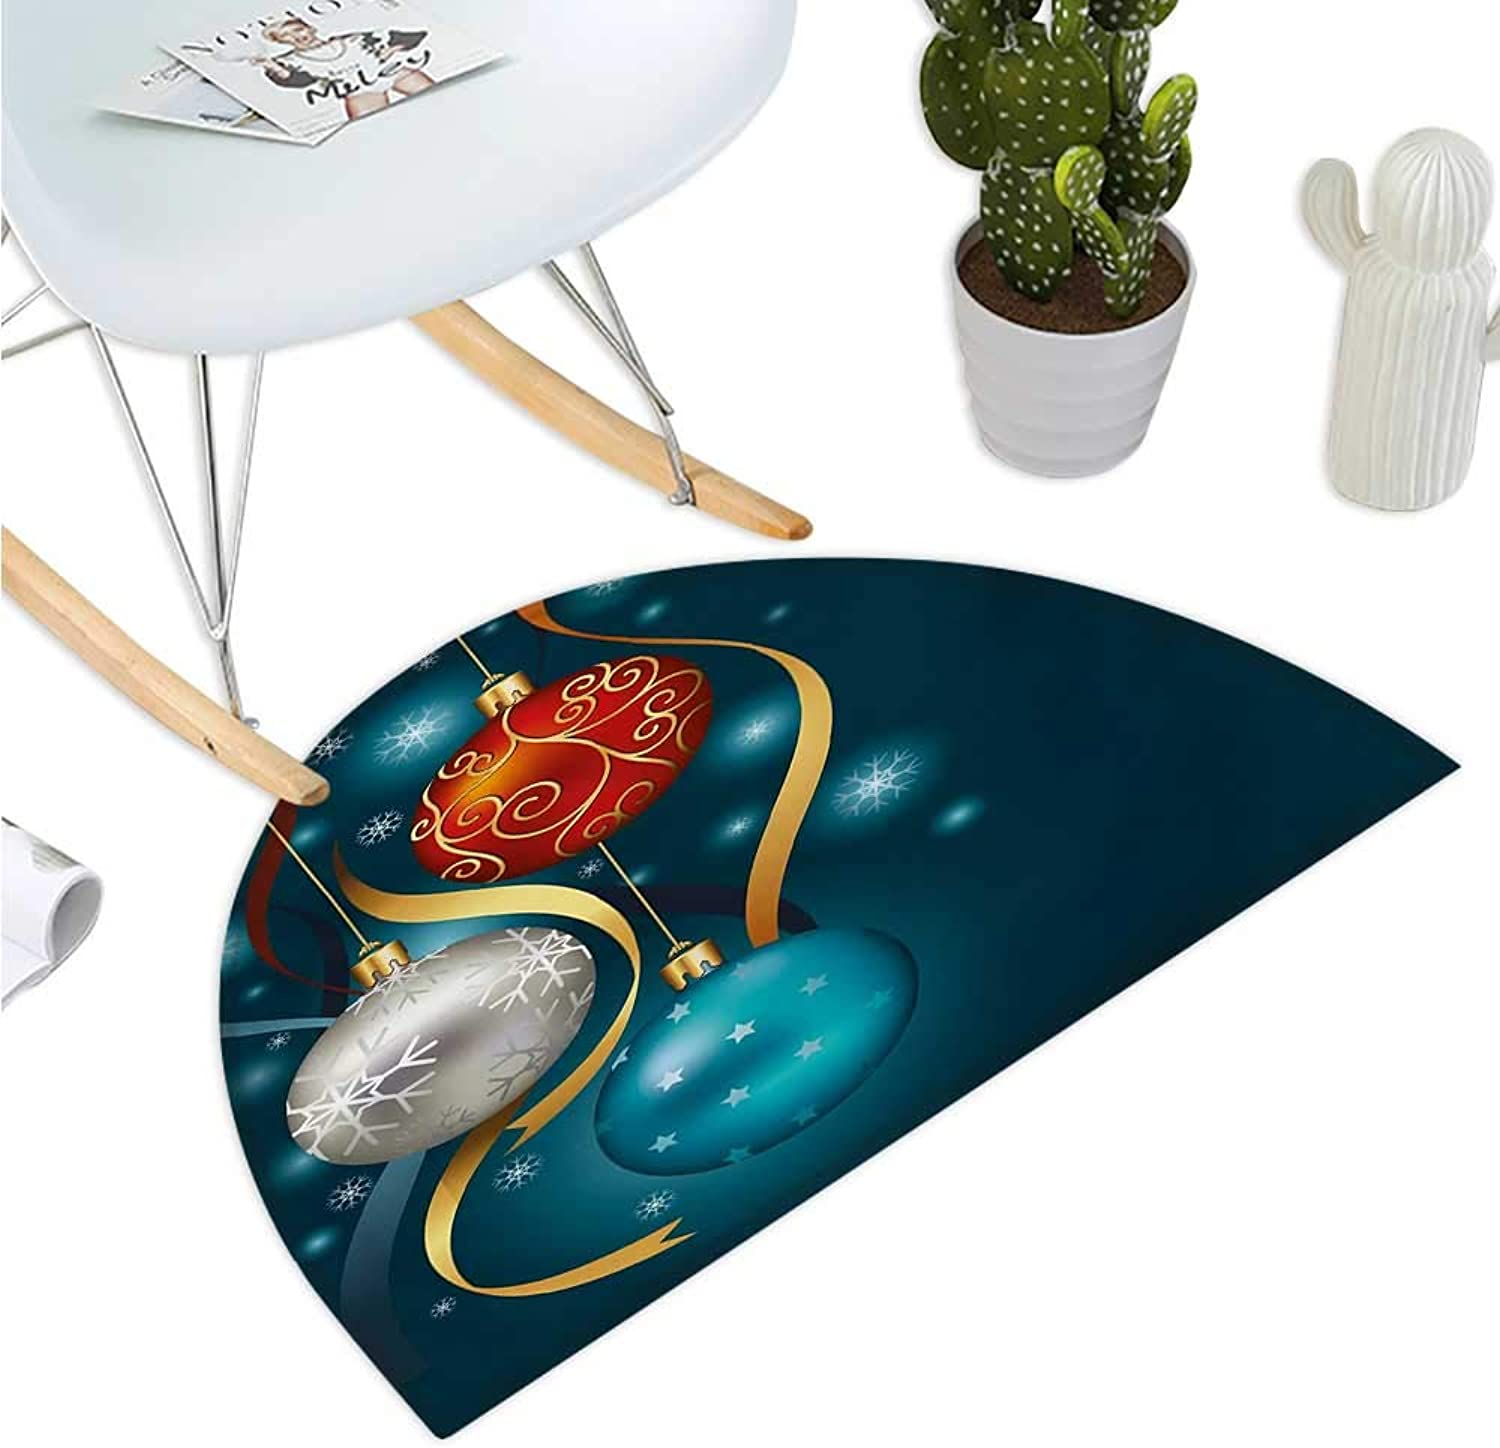 Christmas Semicircular Cushion Vivid Classical Baubles with Ribbons and Different Patterns Abstract Bathroom Mat H 39.3  xD 59  Petrol bluee Grey Red